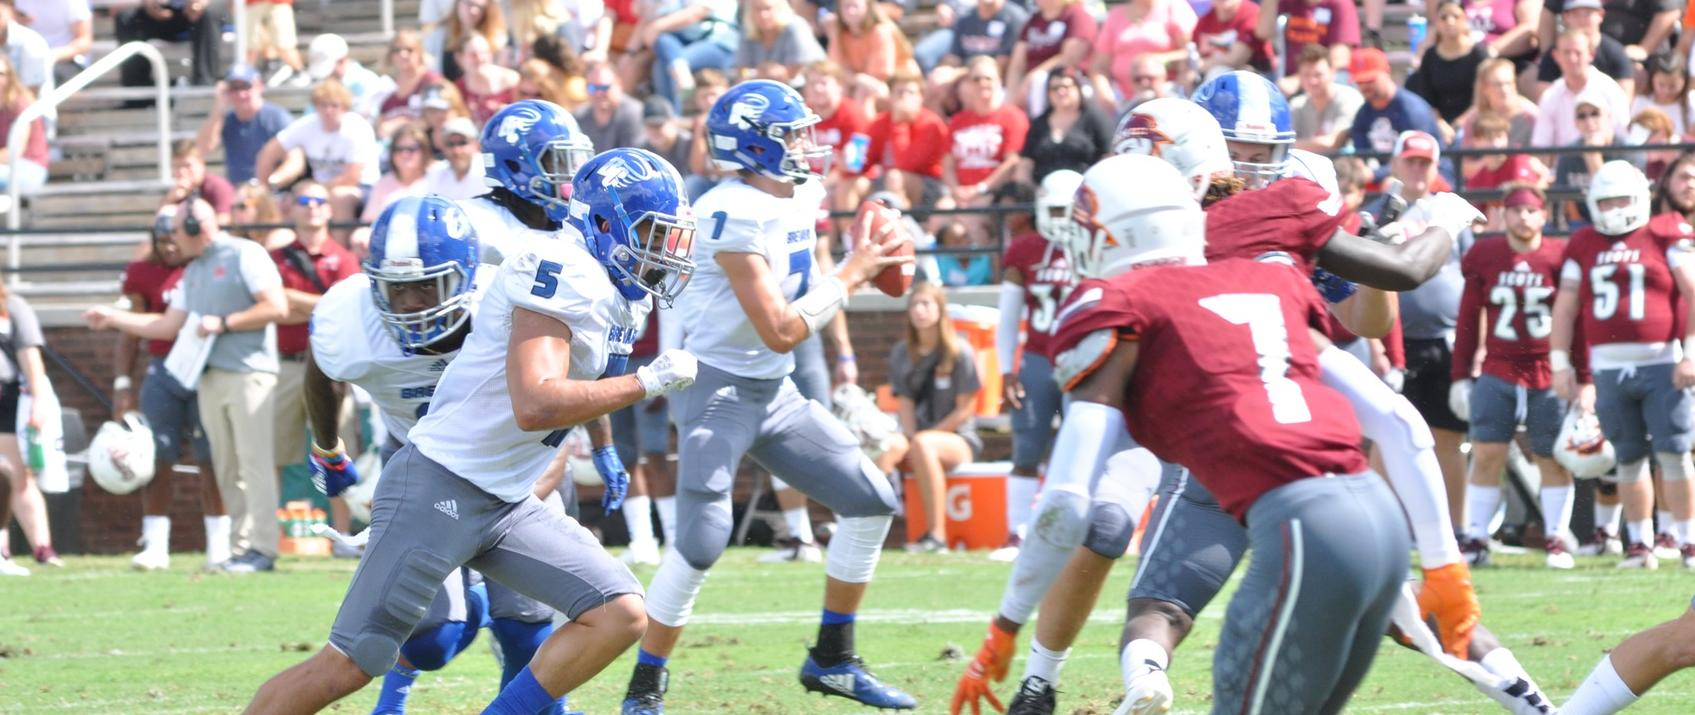 Dalton Cole and the Tornado offense prepare to take on the Maryville Scots for Homecoming on Saturday at Brevard Memorial Stadium (Courtesy of Tommy Moss).